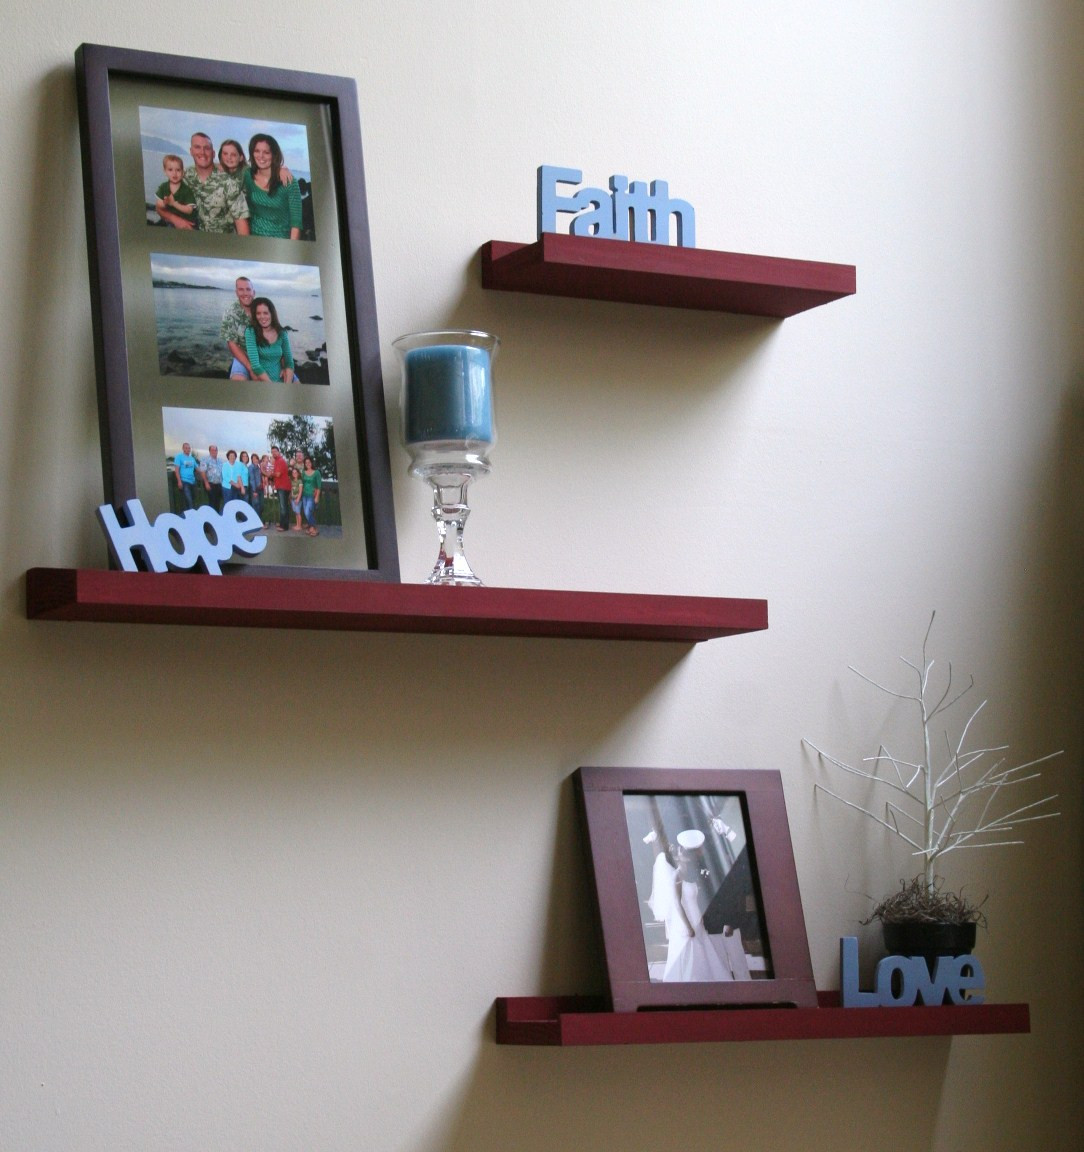 Best ideas about DIY Floating Wall Shelves . Save or Pin The Cupcake Cuppy DIY Floating Shelves Now.